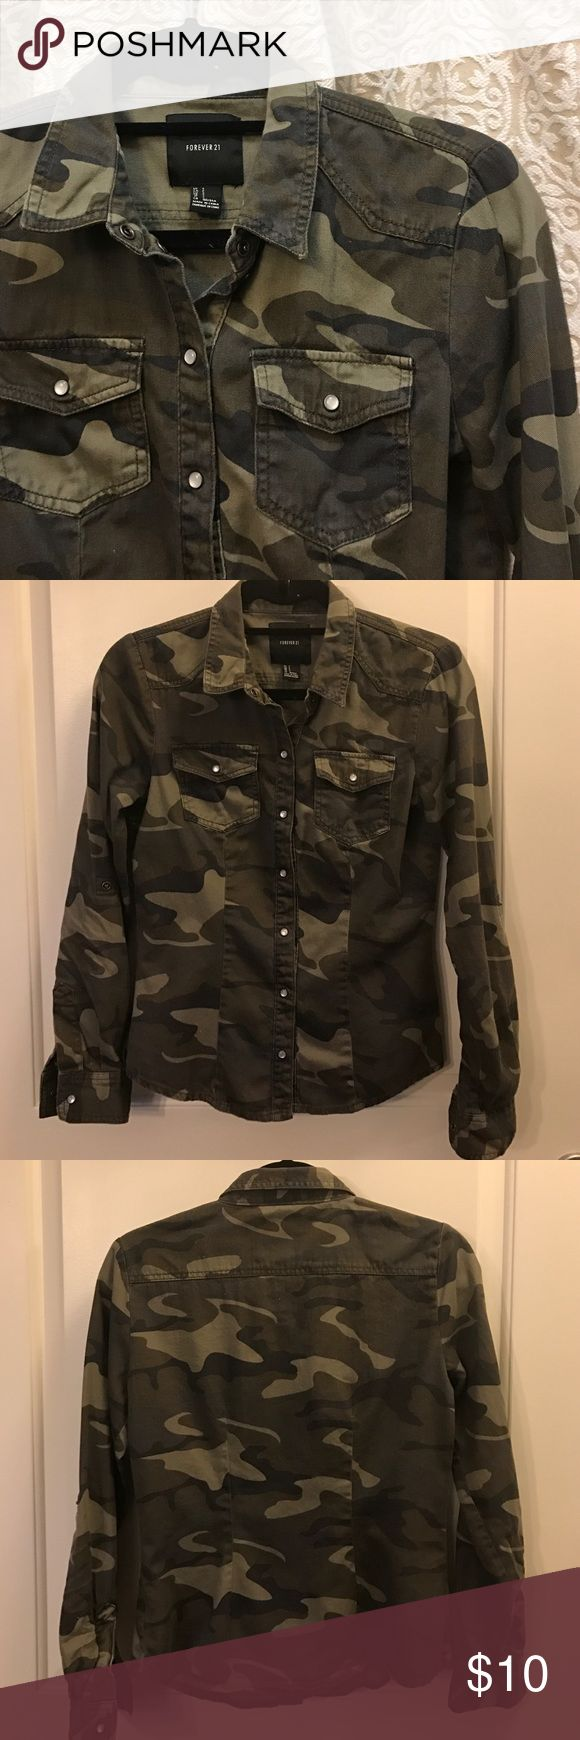 """Forever 21 Camo Top Forever 21 Camo Top, Snap Up Front, Snaps On Sleeve Ends And Also Midway Up To Roll Sleeves And Snap In Place, 100% Cotton, Machine Wash, Looks Great Buttoned Up or Worn Open w/ Tank or Tee Underneath 